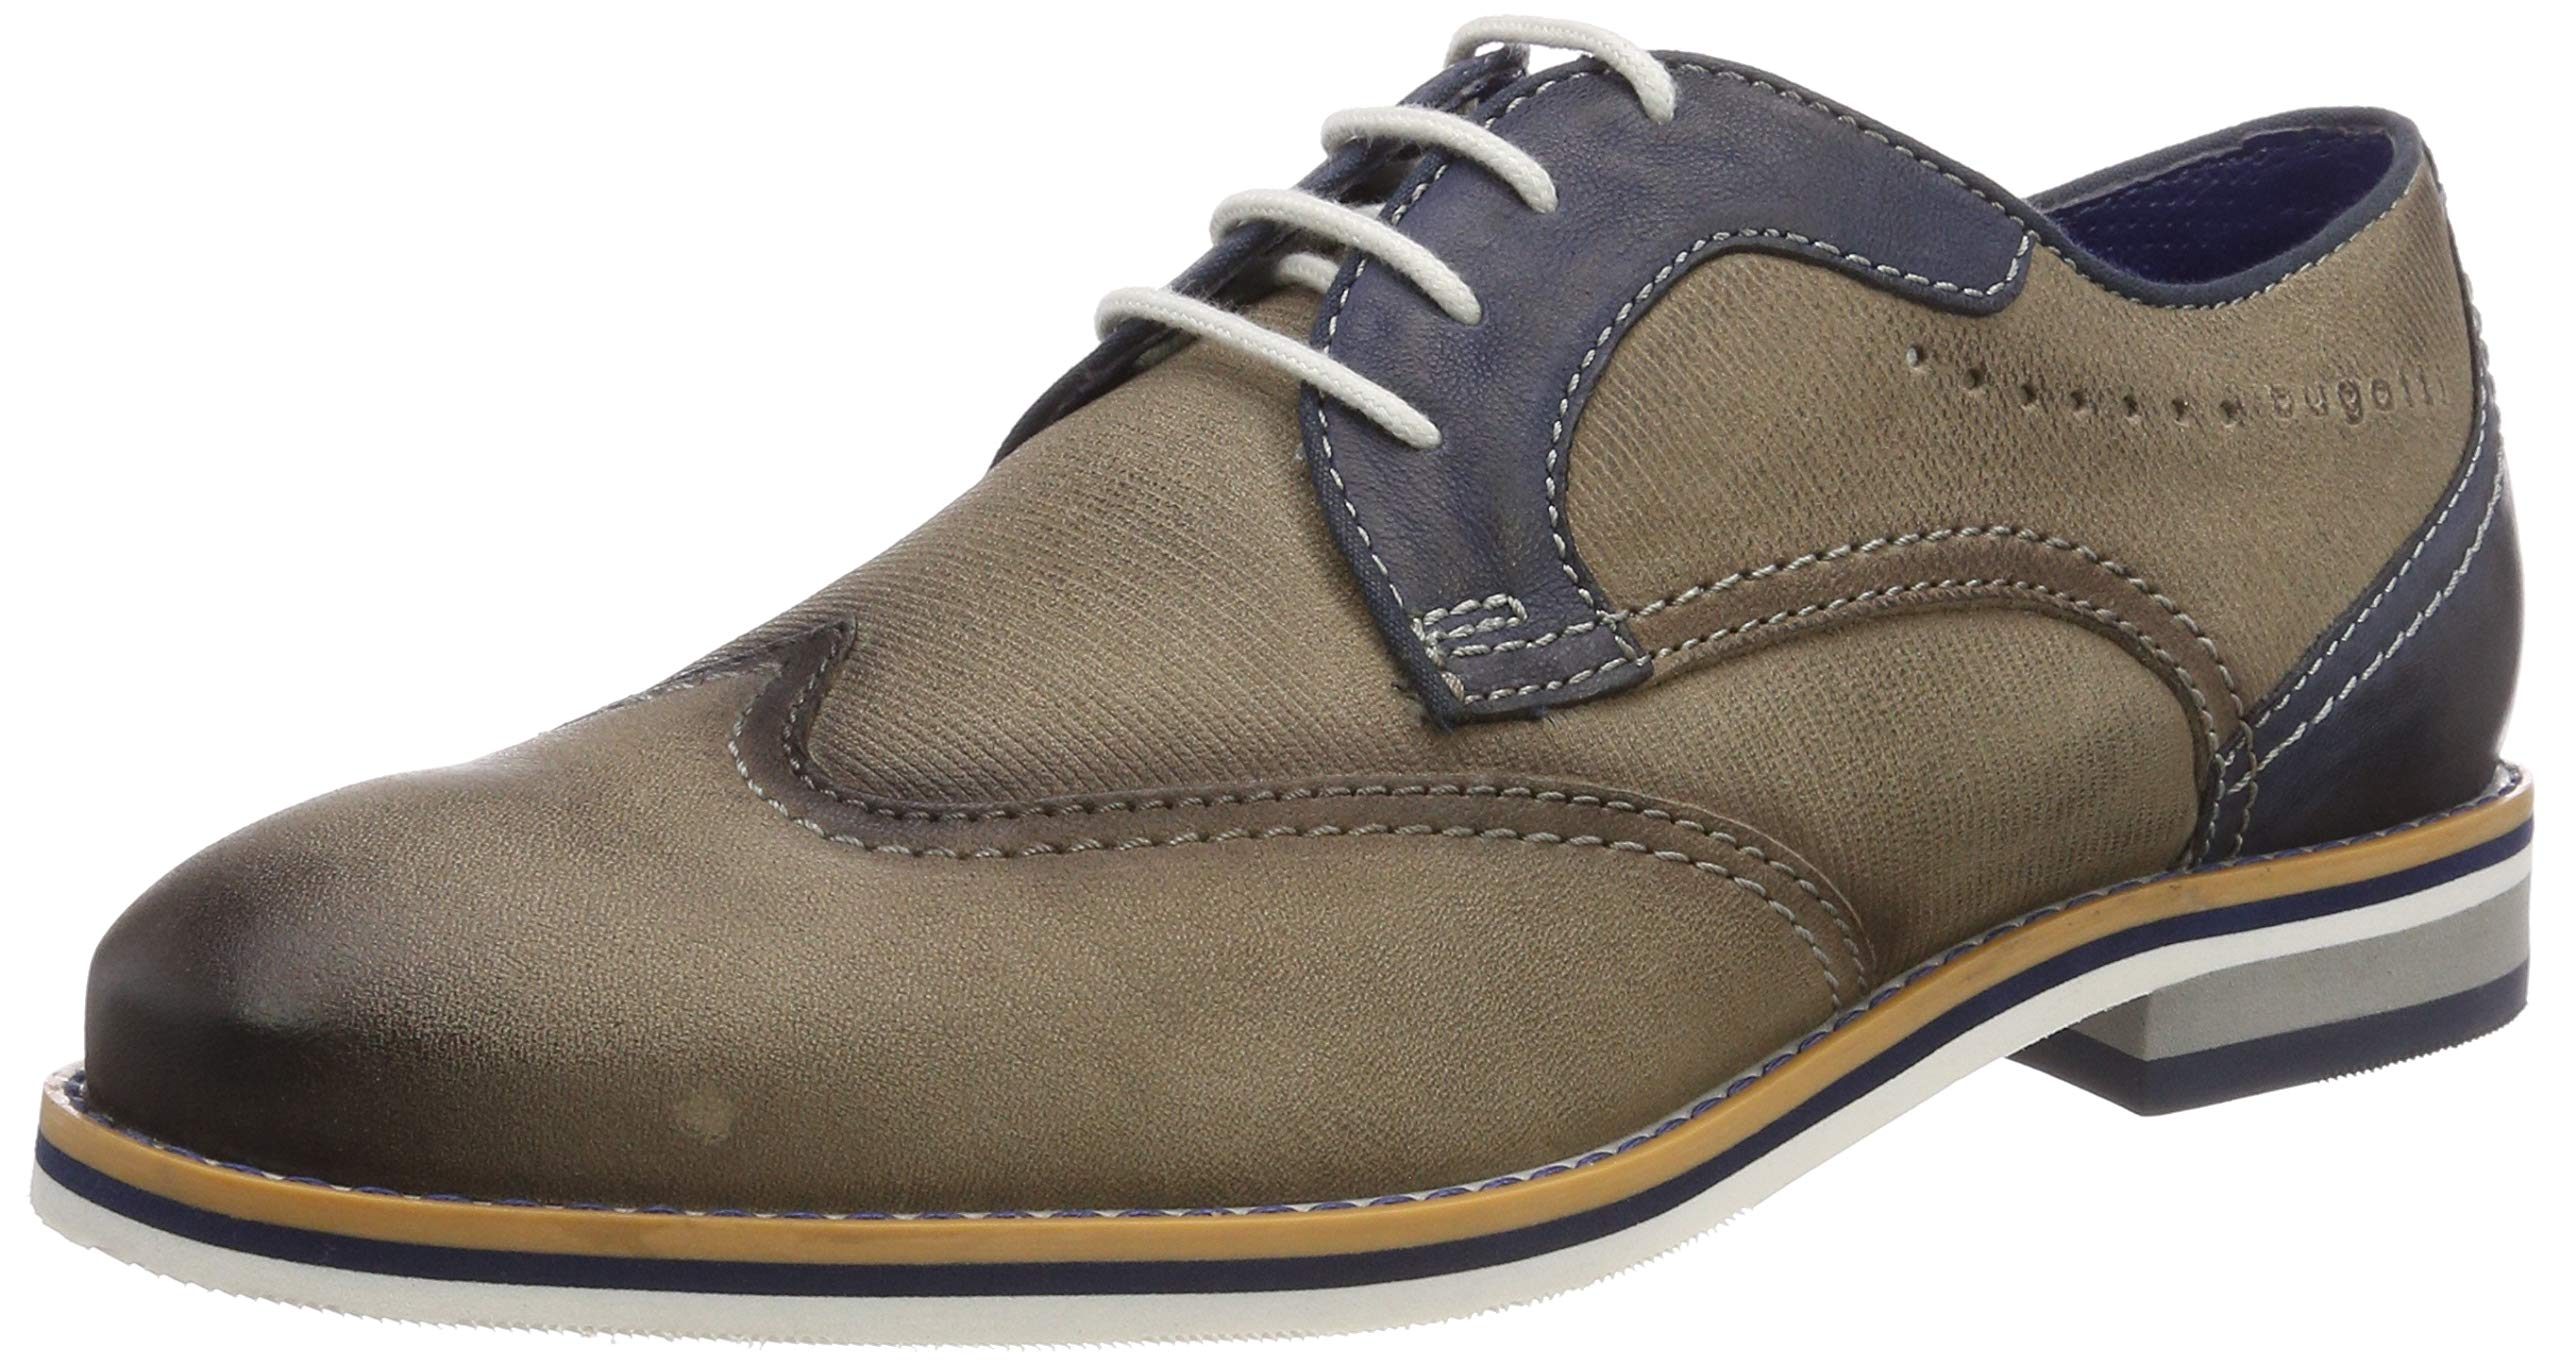 dark Blue Bugatti 311694013535Derbys 124144 Eu HommeGrislight Grey sCrtQhxBd